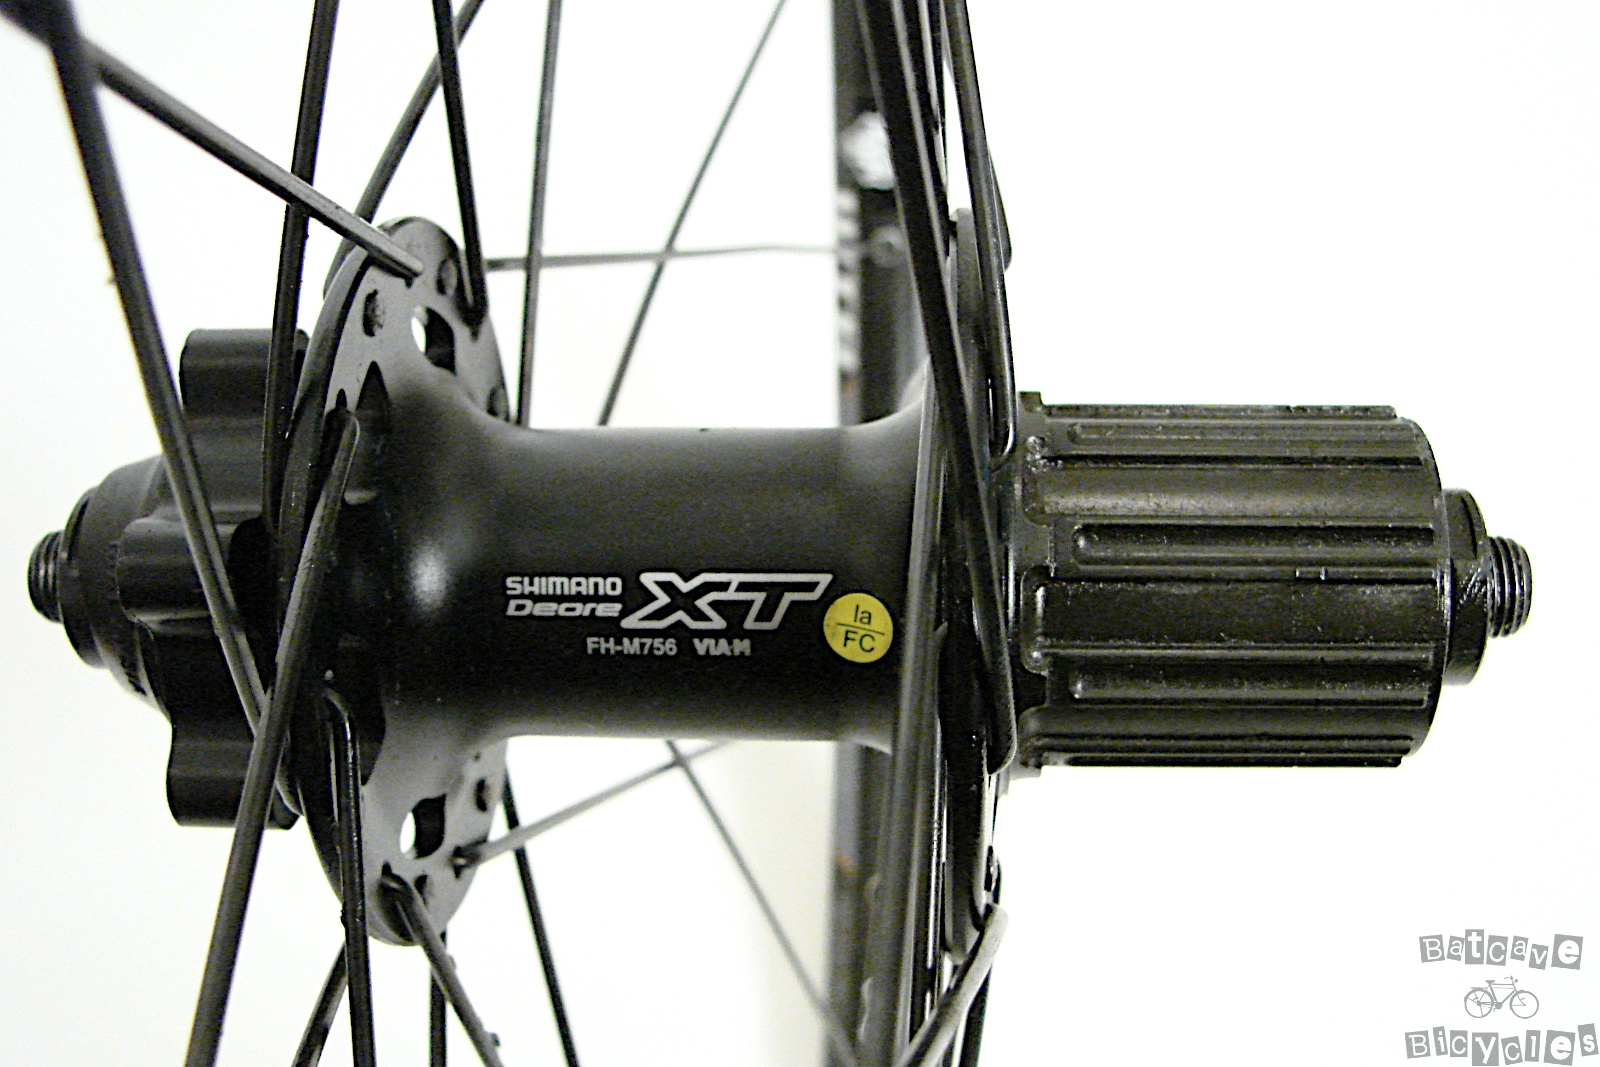 M756 Shimano Deore XT 26 inch 6 Bolt Mountain Bike Wheels | eBay